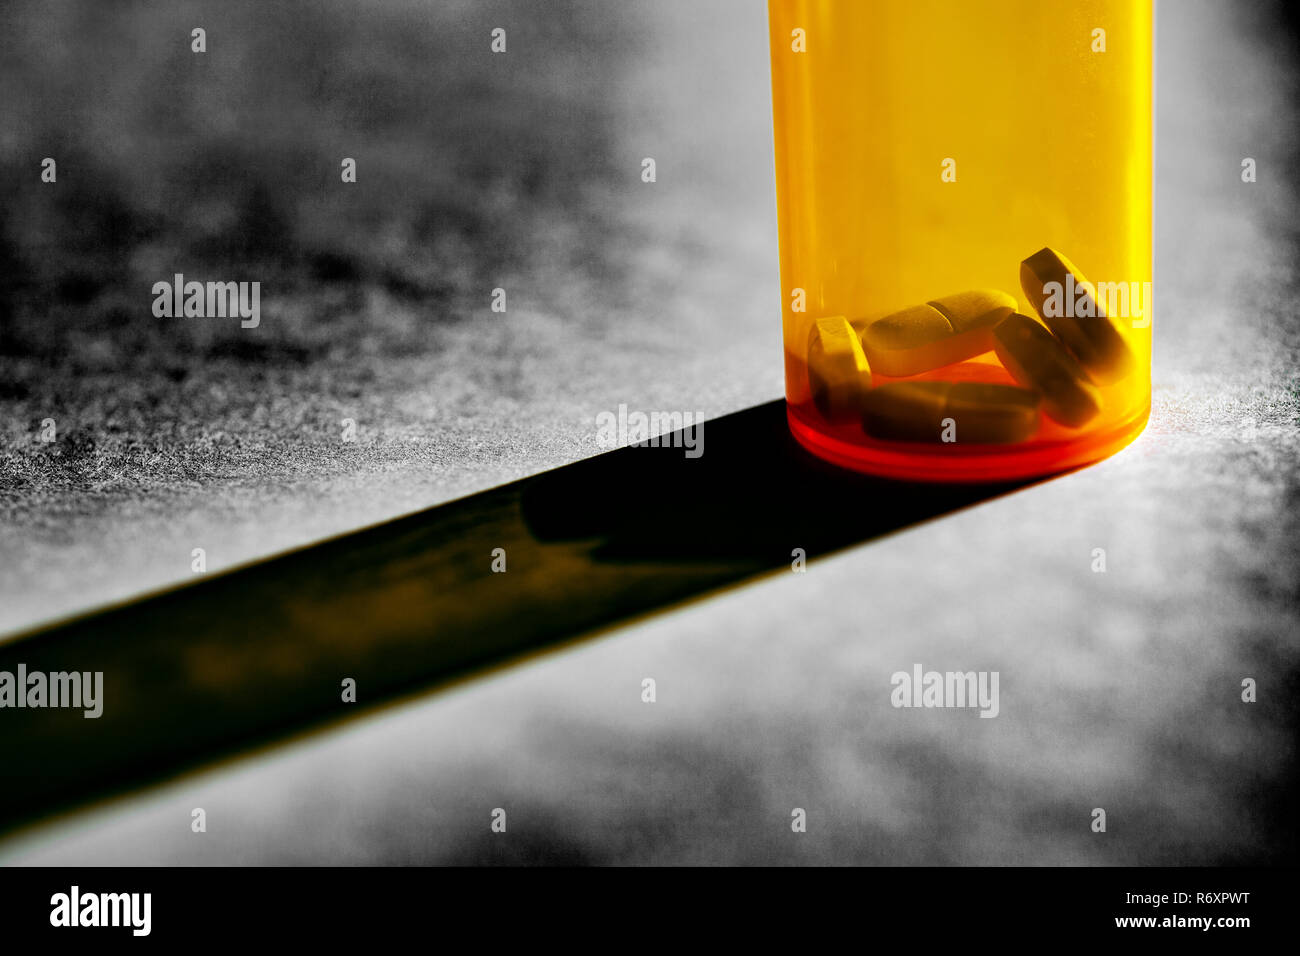 WA17040-00...WASHINGTON - Acetaminophen Hydrocodone pills in a bottle. - Stock Image